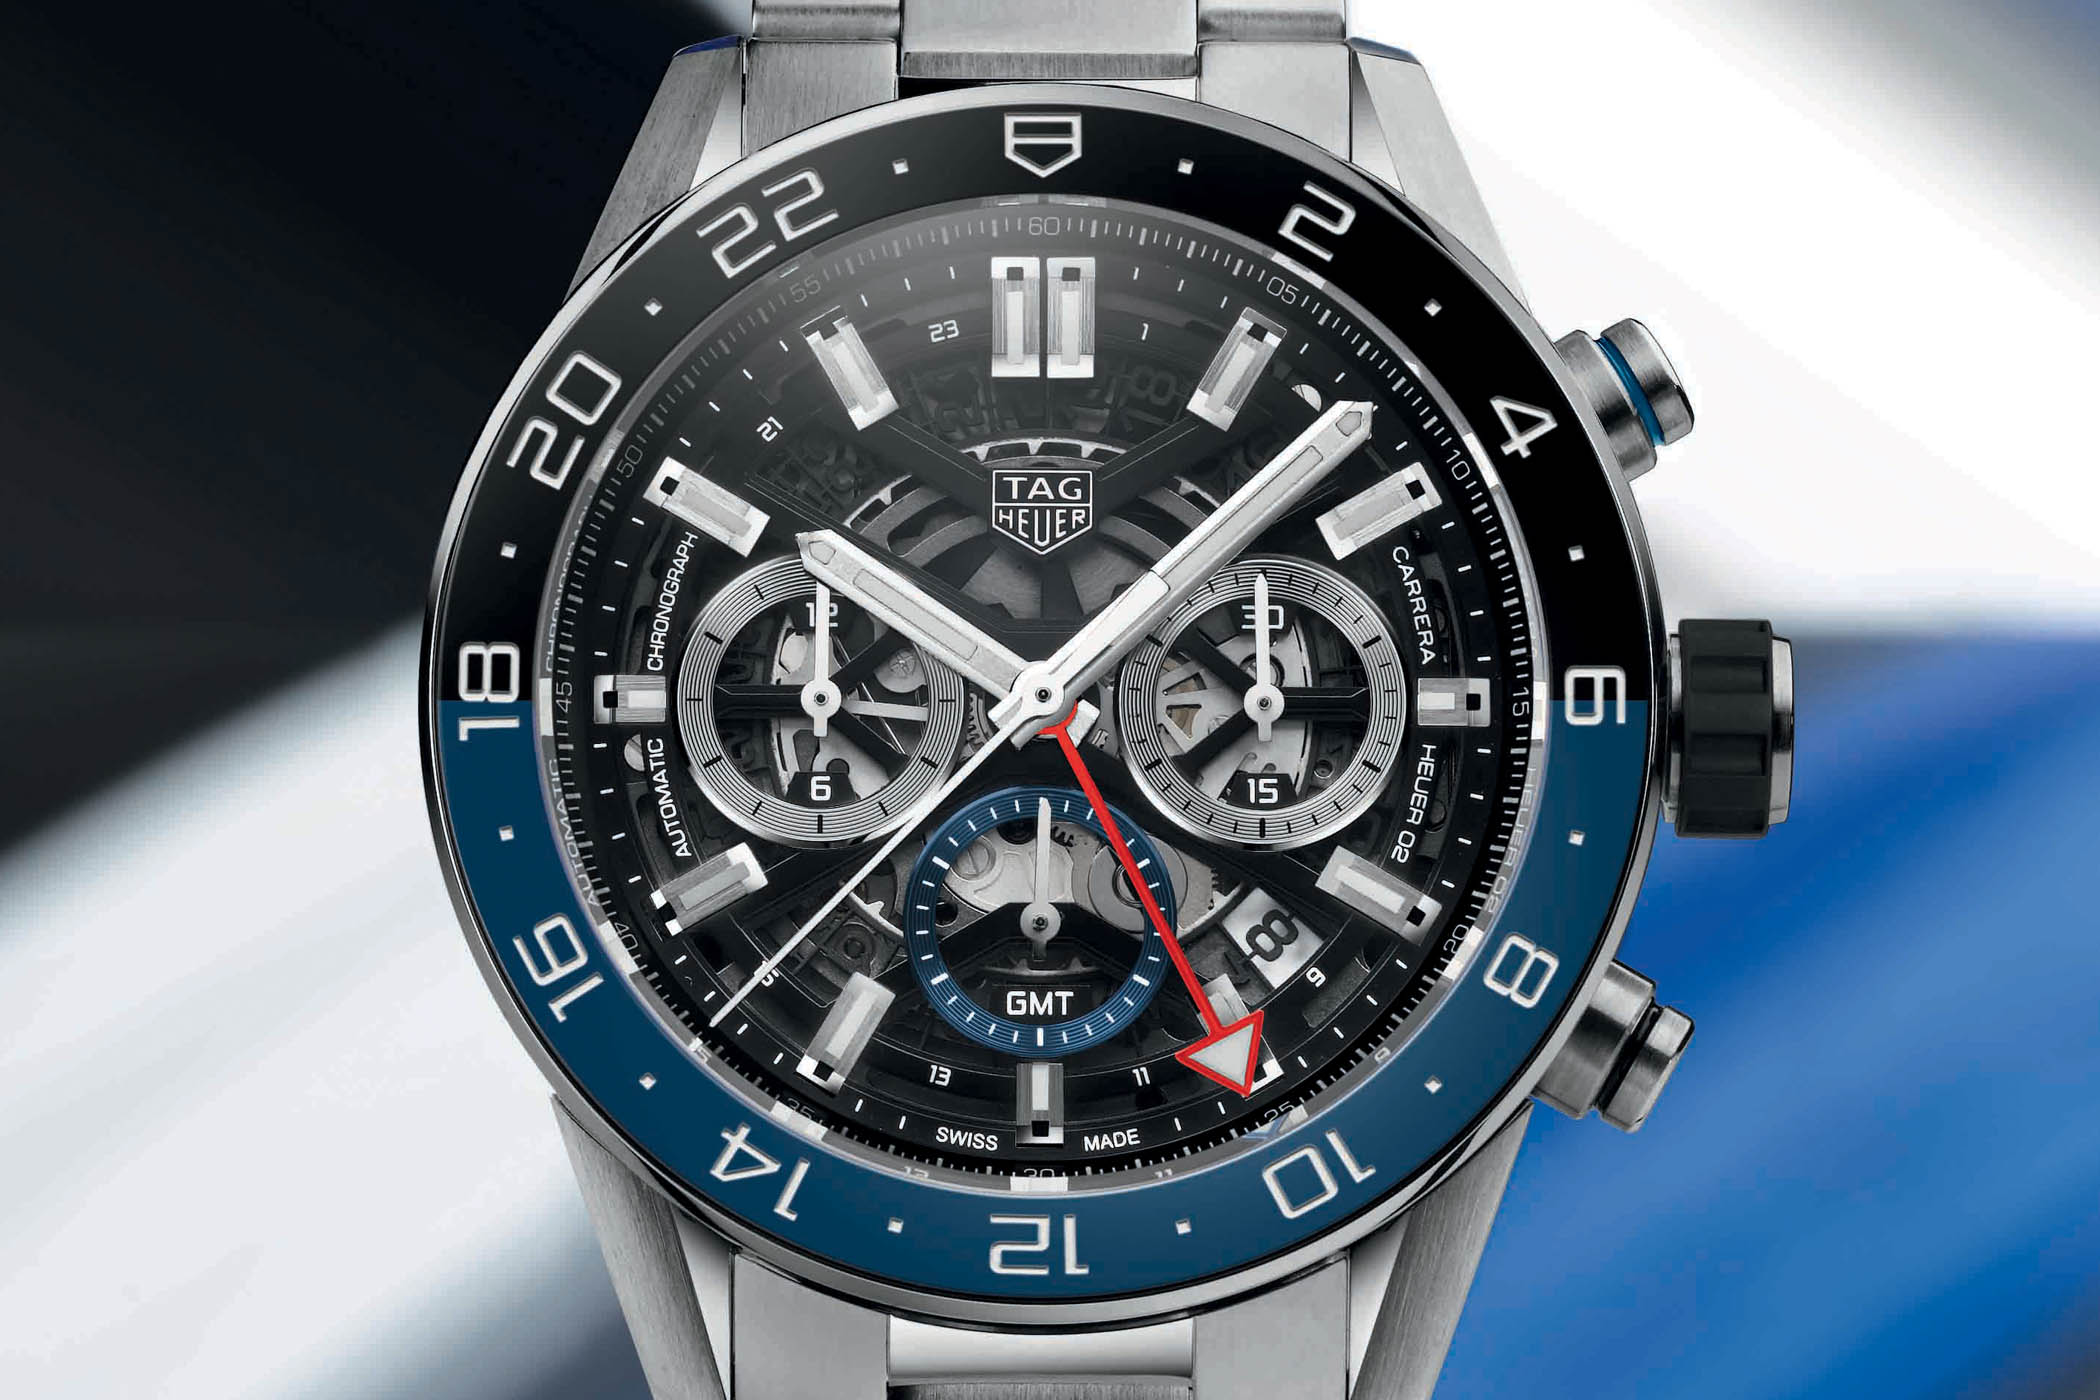 This Tag: TAG Heuer Carrera Heuer 02 GMT Chronograph